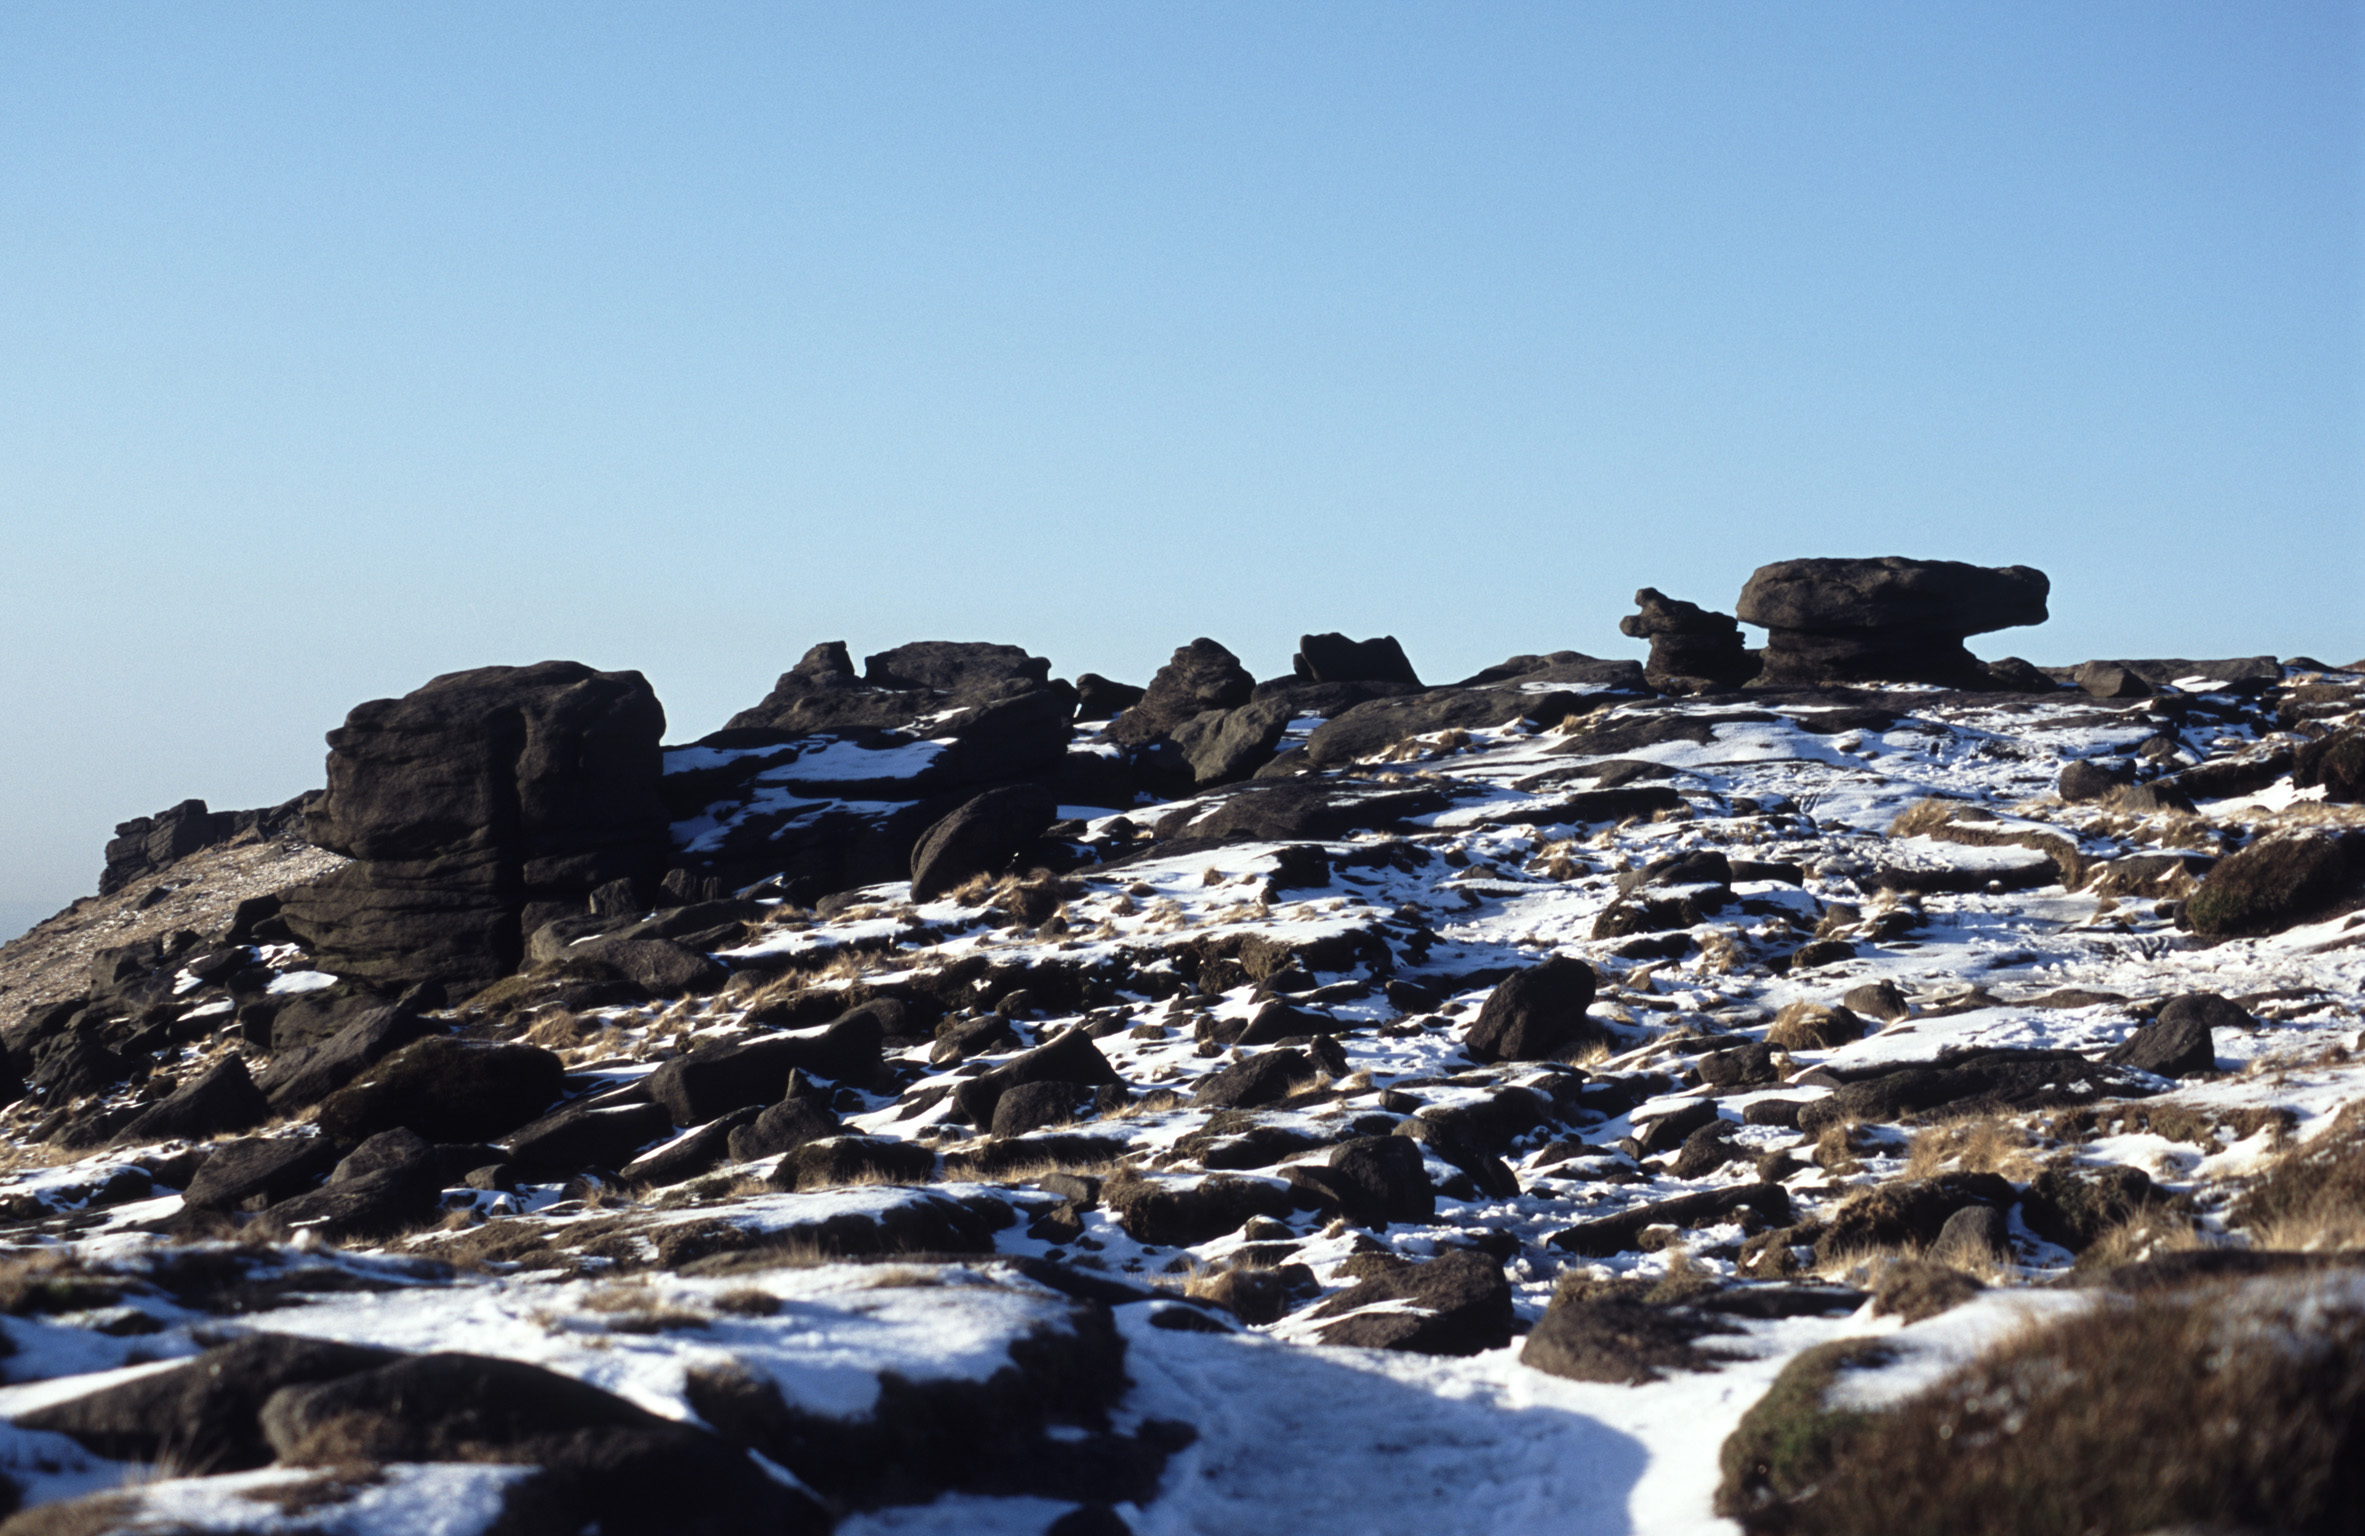 Rocky Landscape in Winter on Sunny Day, Kinder Scout National Nature Reserve, England